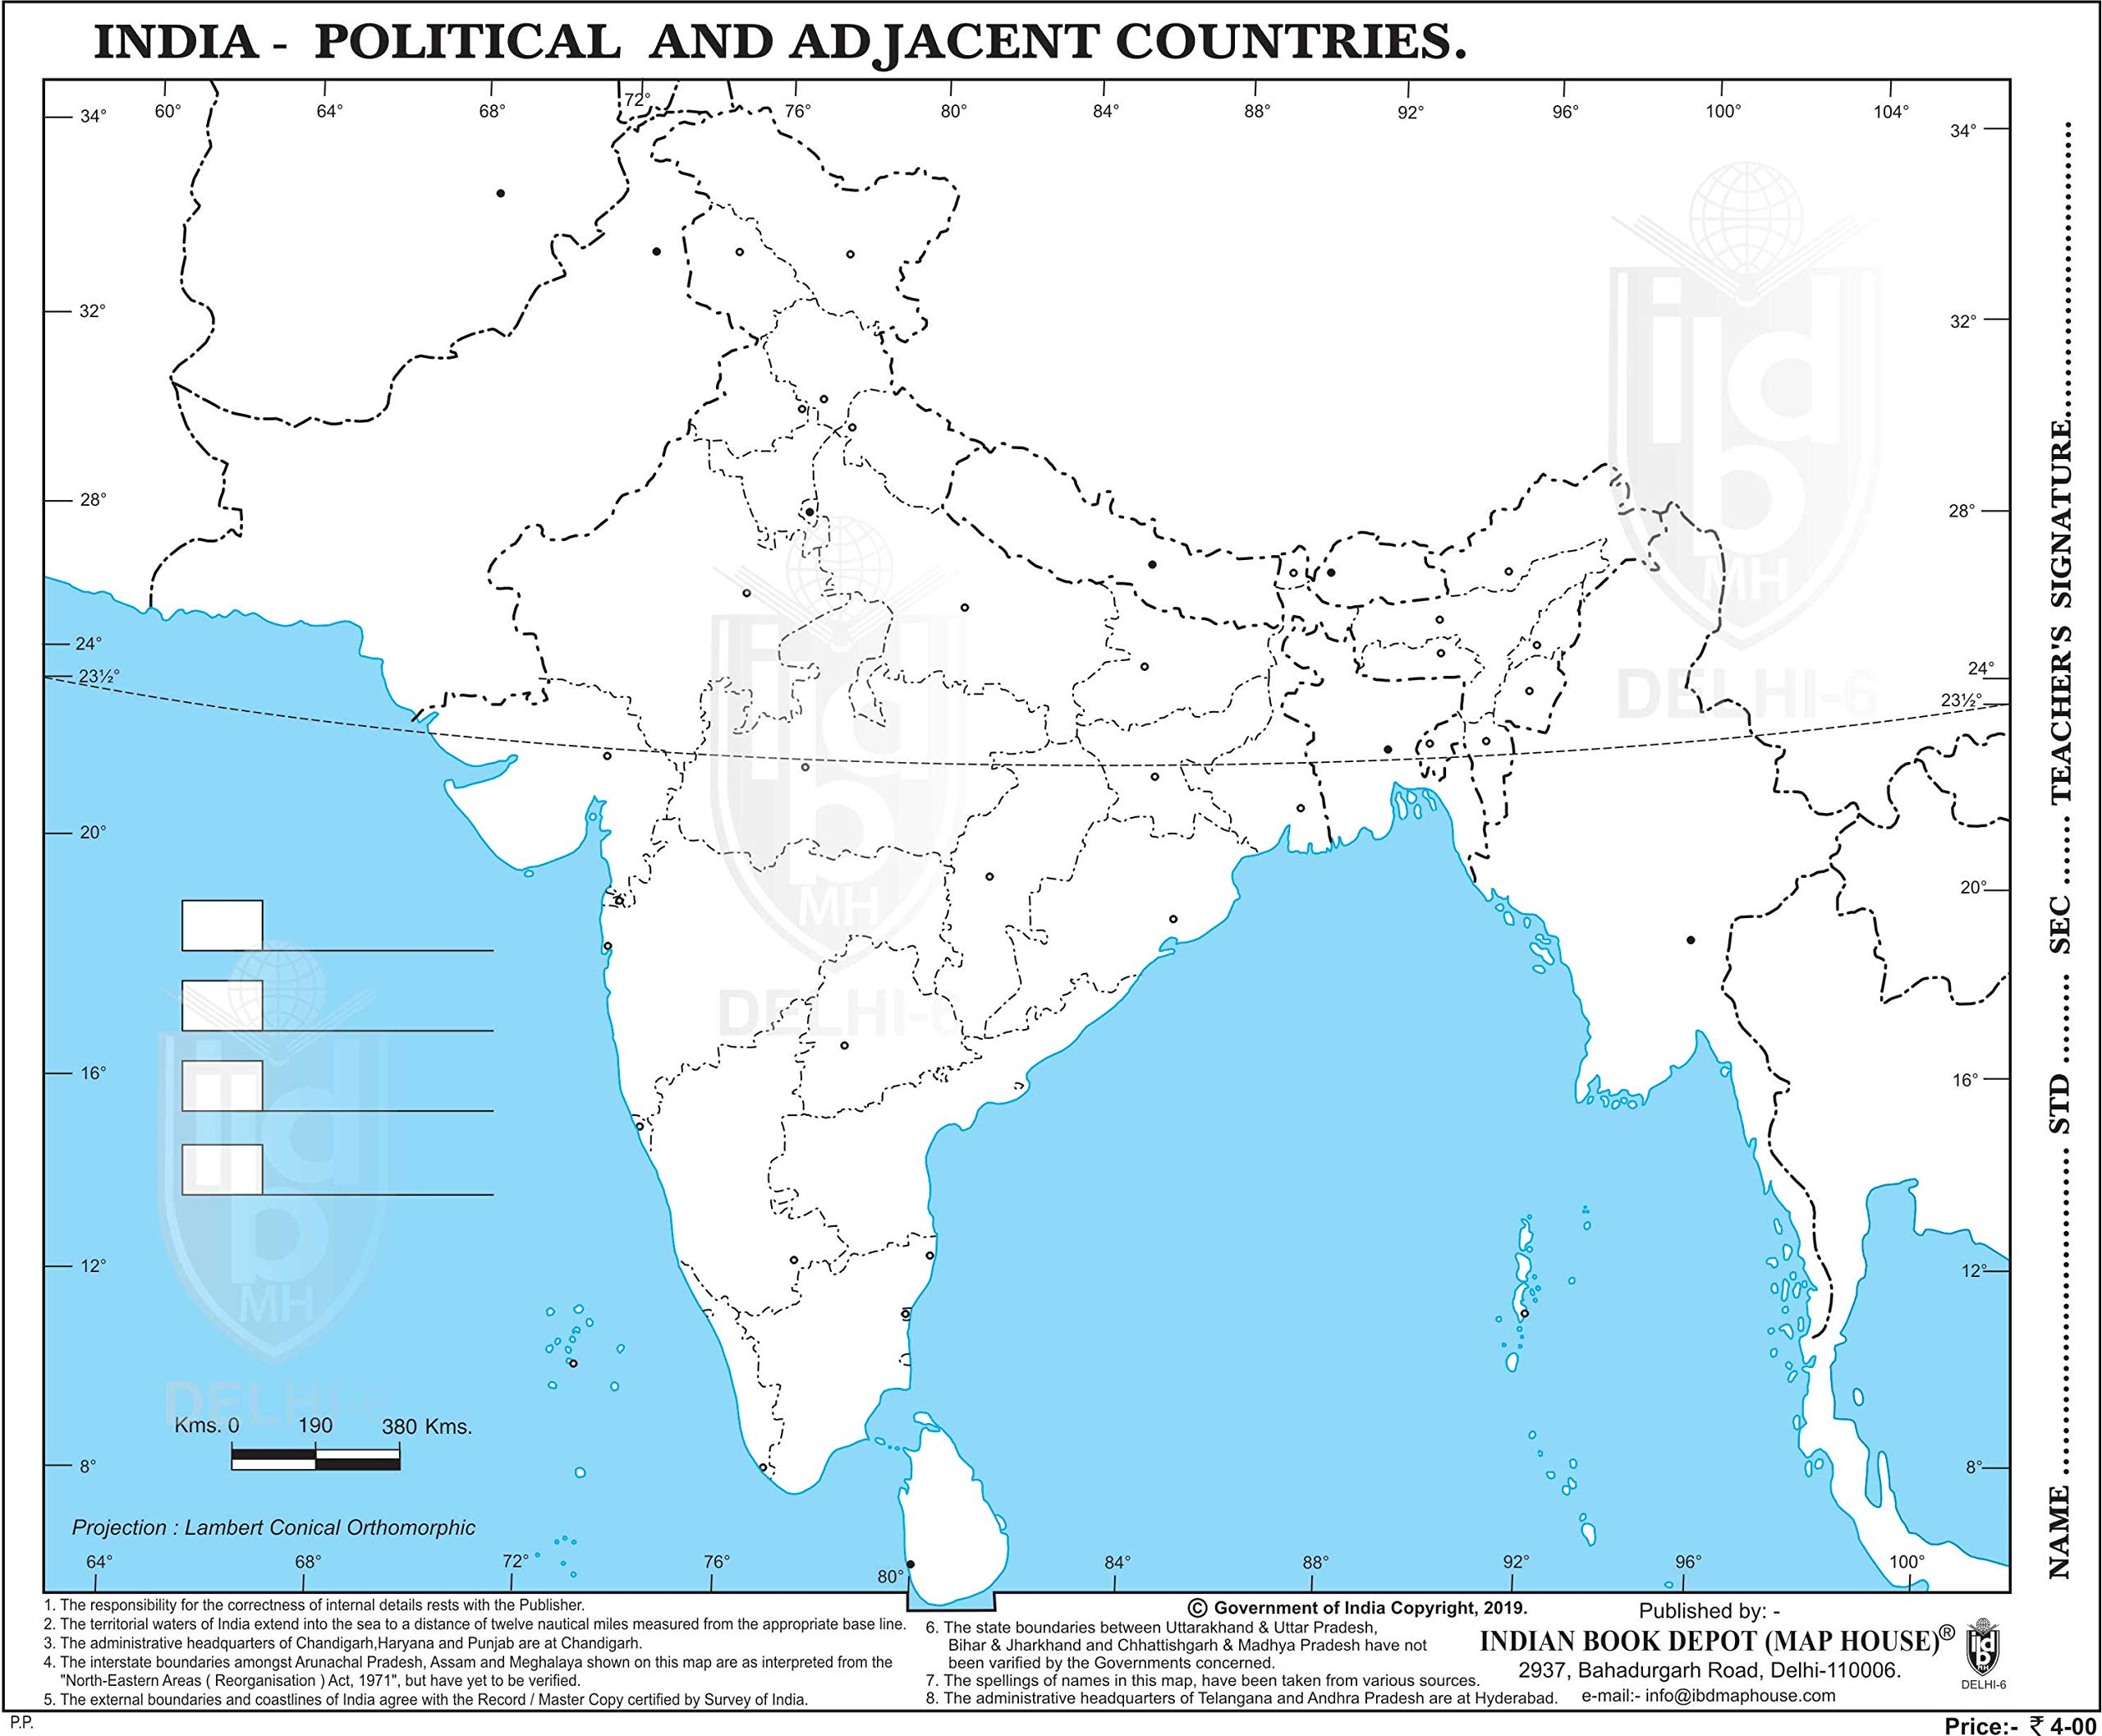 blank india political map for practice Buy India Practice Map Big Size With New Jammu Kashmir And blank india political map for practice